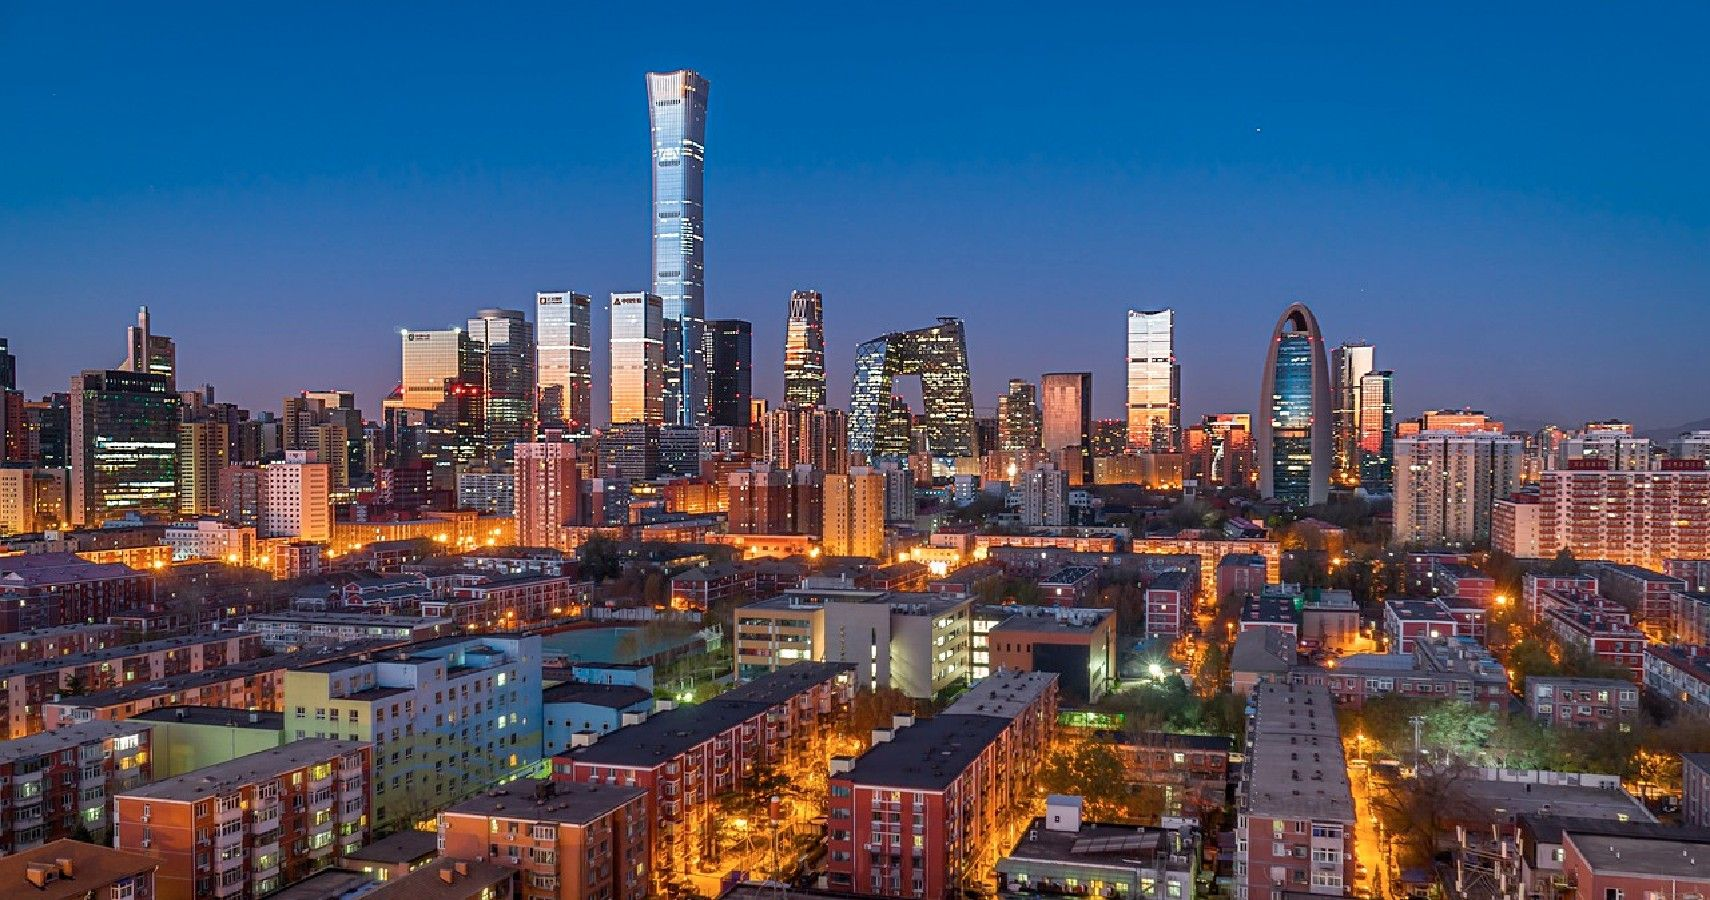 The City Of The Richest: Beijing Overtakes New York City As A Hub Of Billionaires